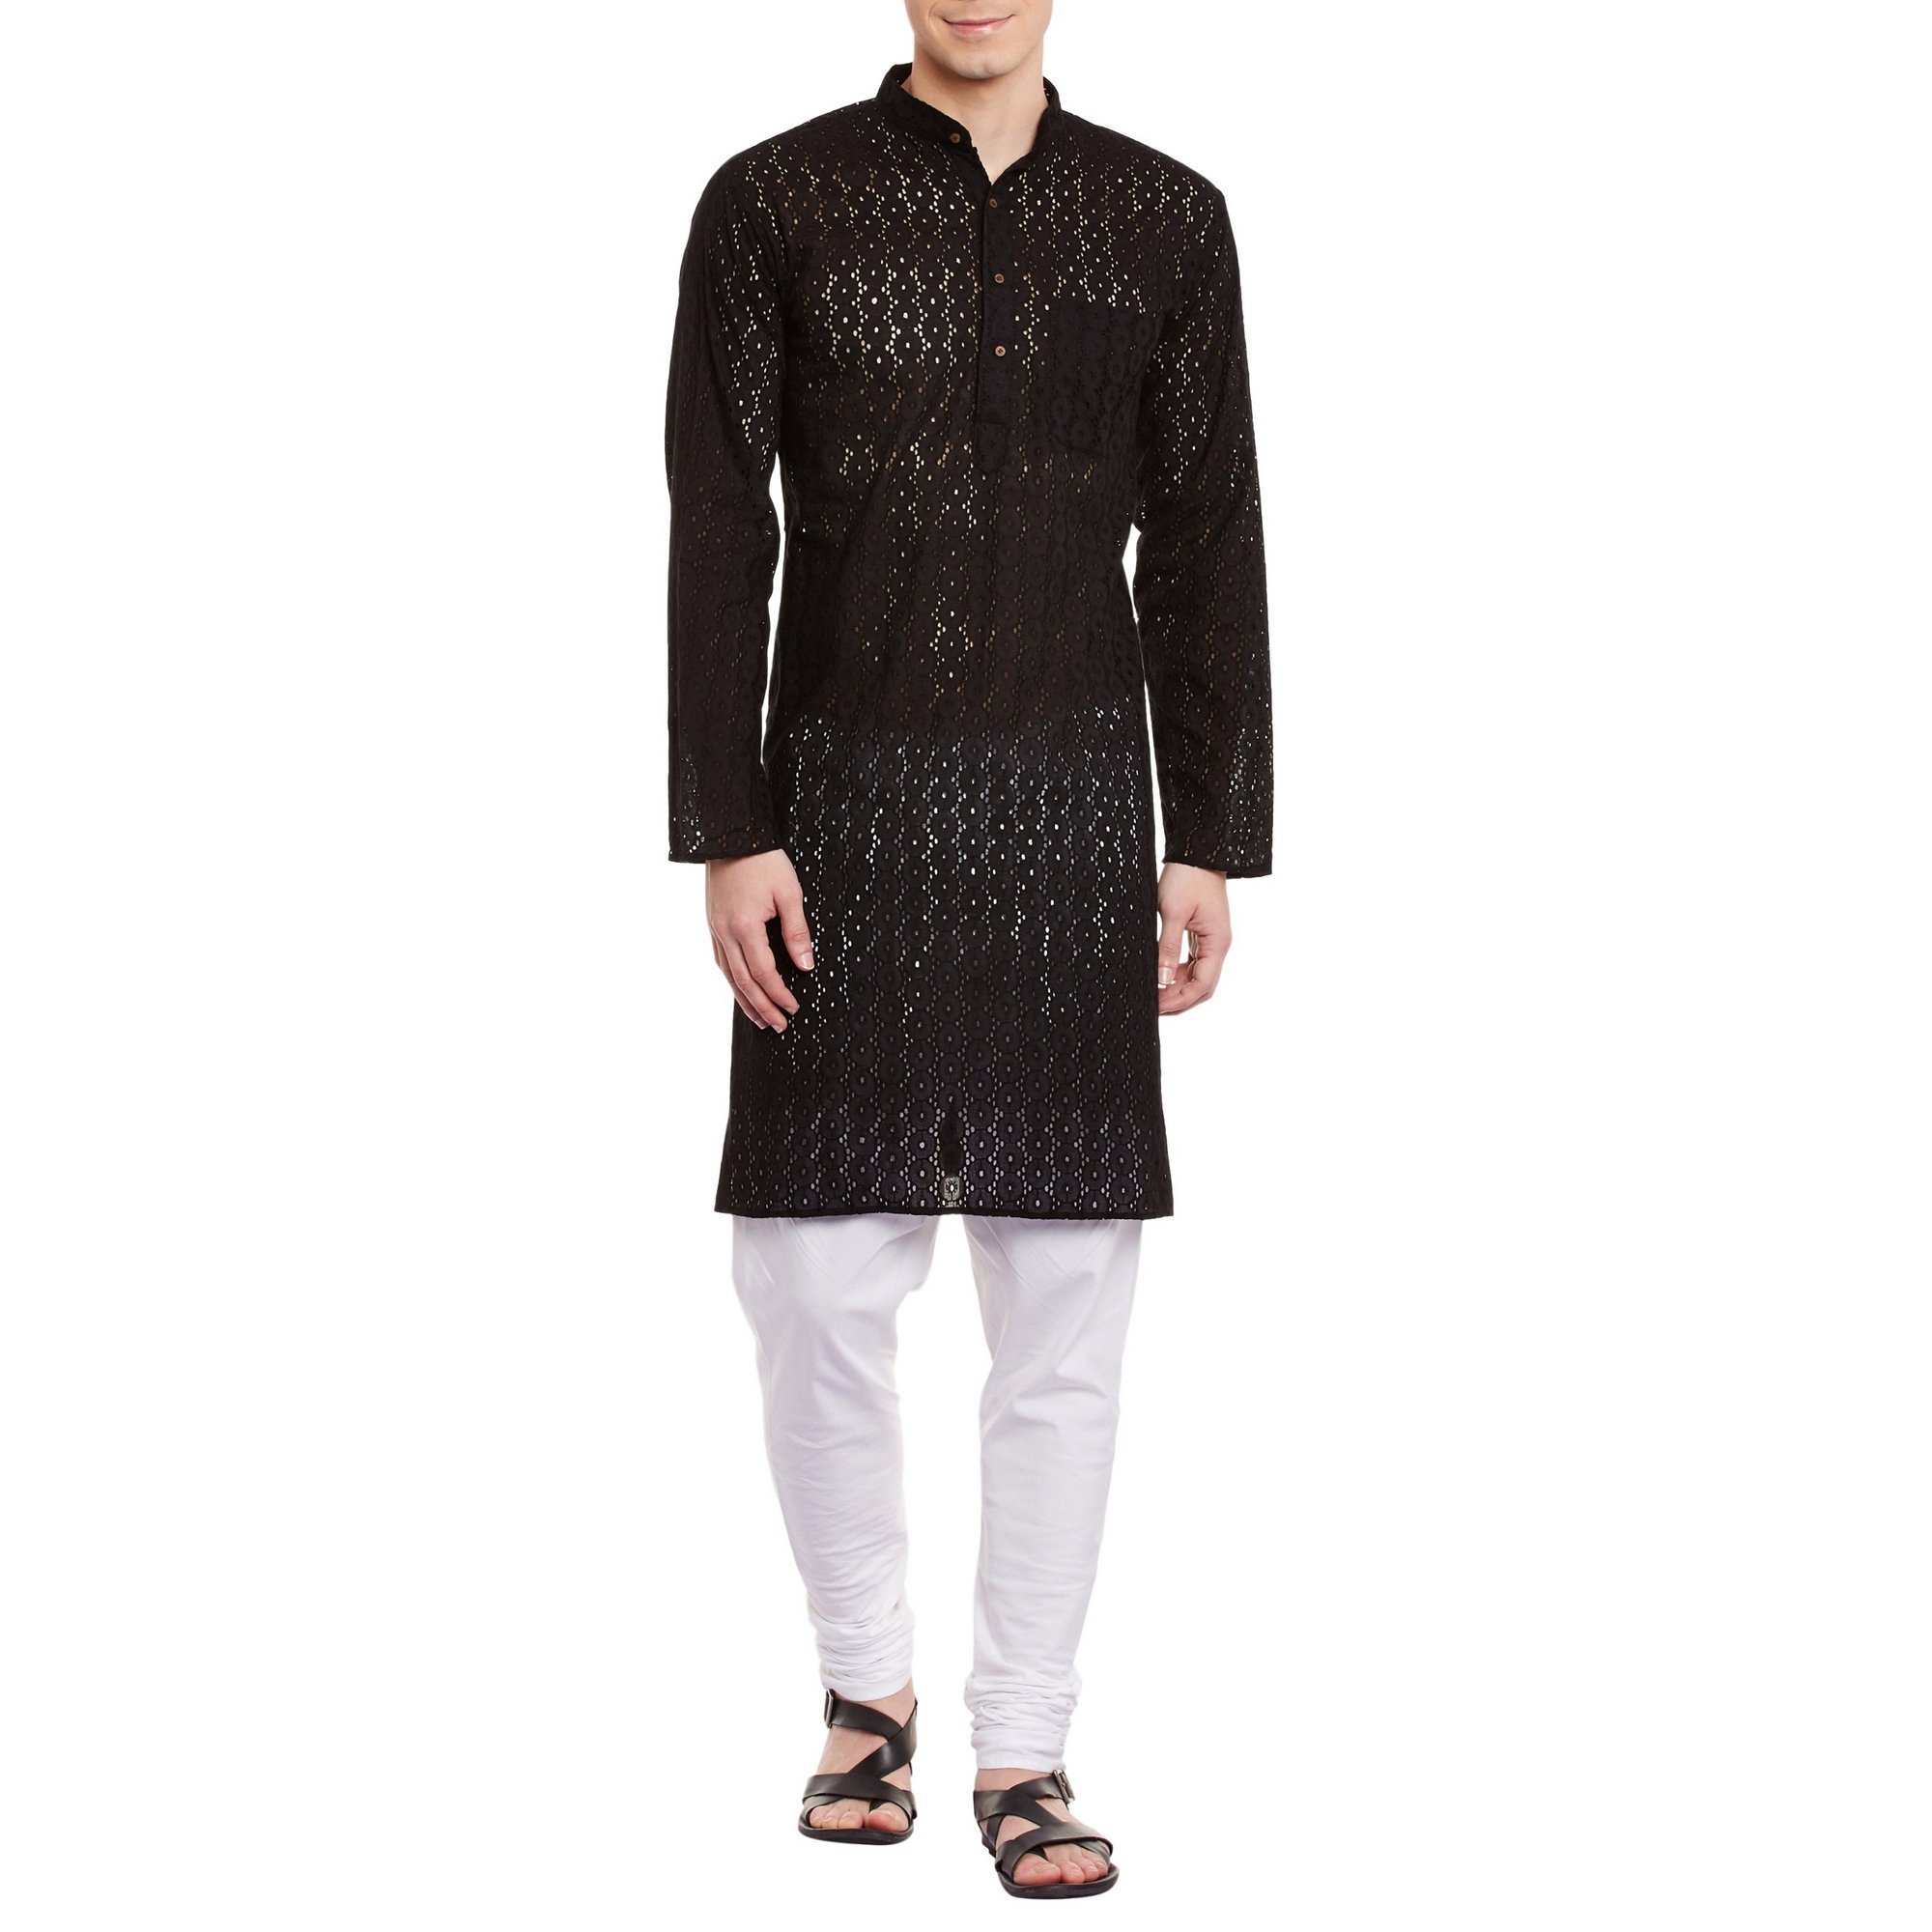 ShalinIndia Mens Embroidered Cutwork Cotton Kurta With Churidar Pajama Trousers Machine Embroidery,Black Chest Size: 40 Inch